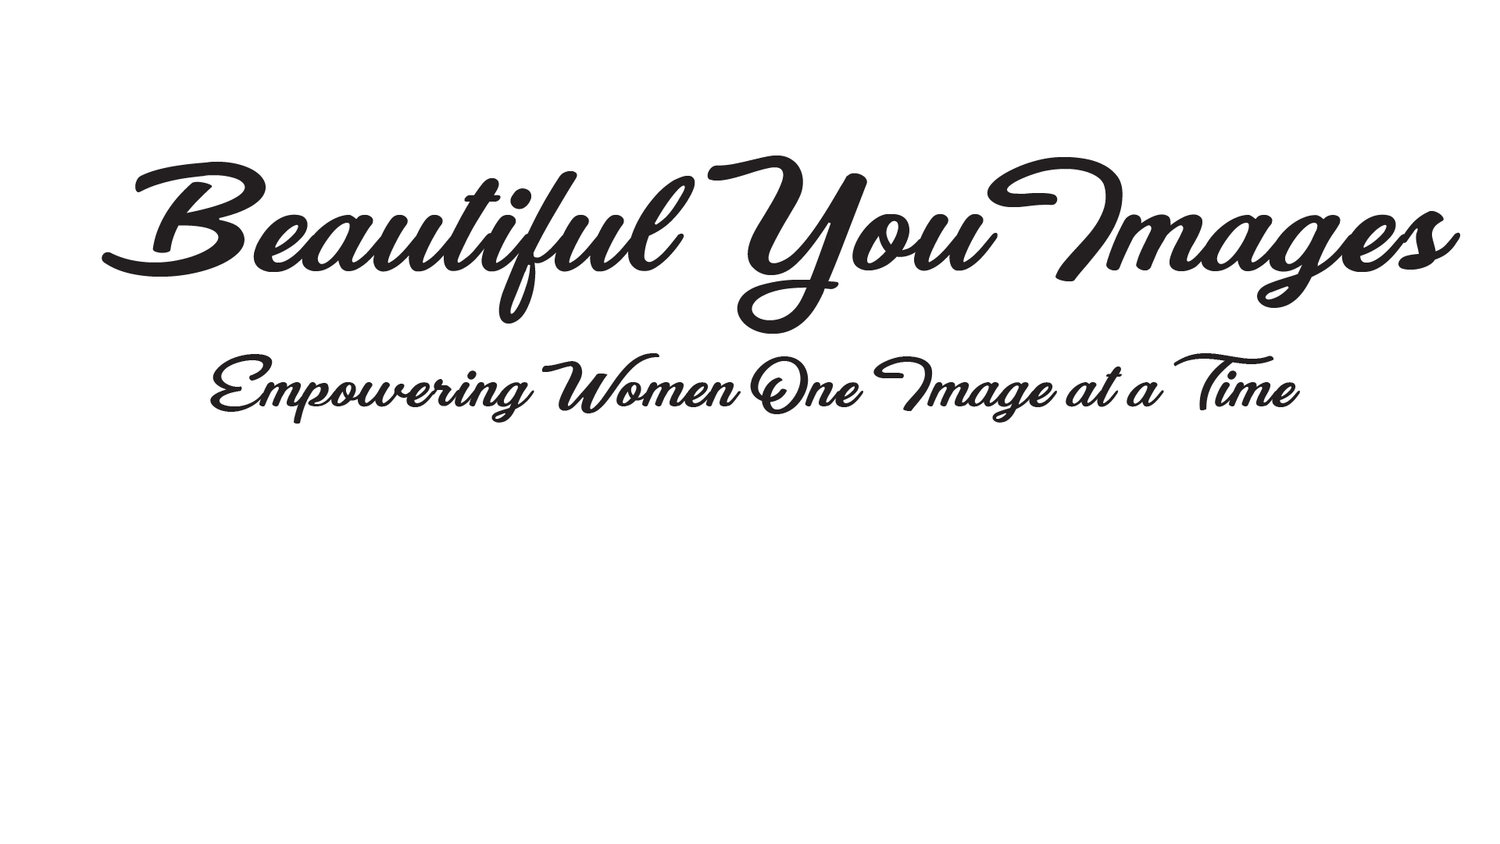 Beautiful You Images - St Petersburg, FL Fashion Photography